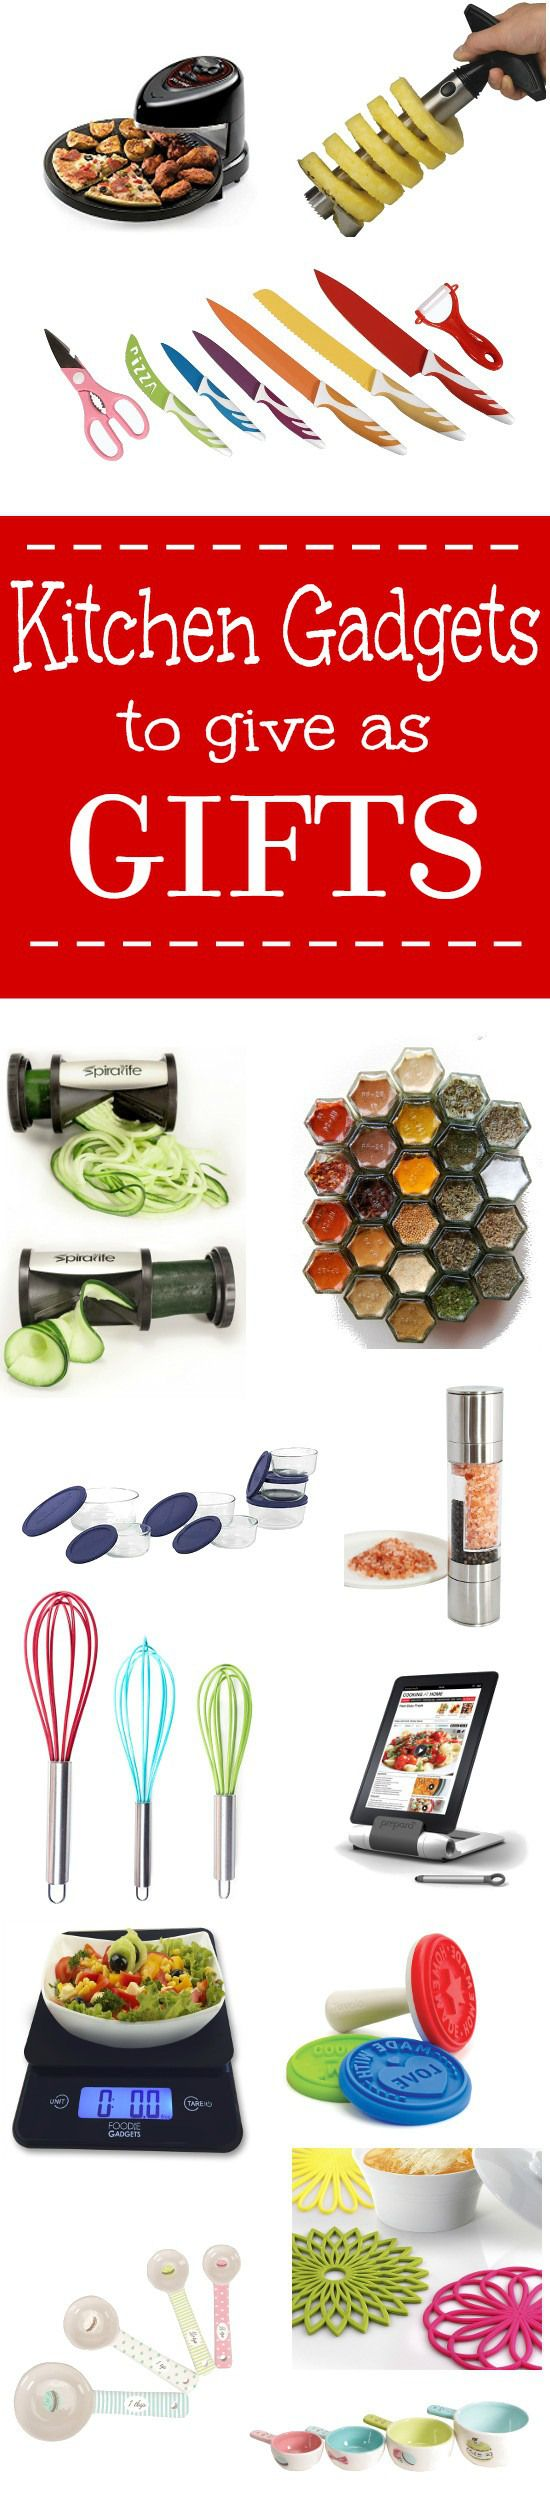 Kitchen Gadget Gift Ideas Kitchen Gadgets Gifts Kitchen Gift Diy Christmas Gifts For Family